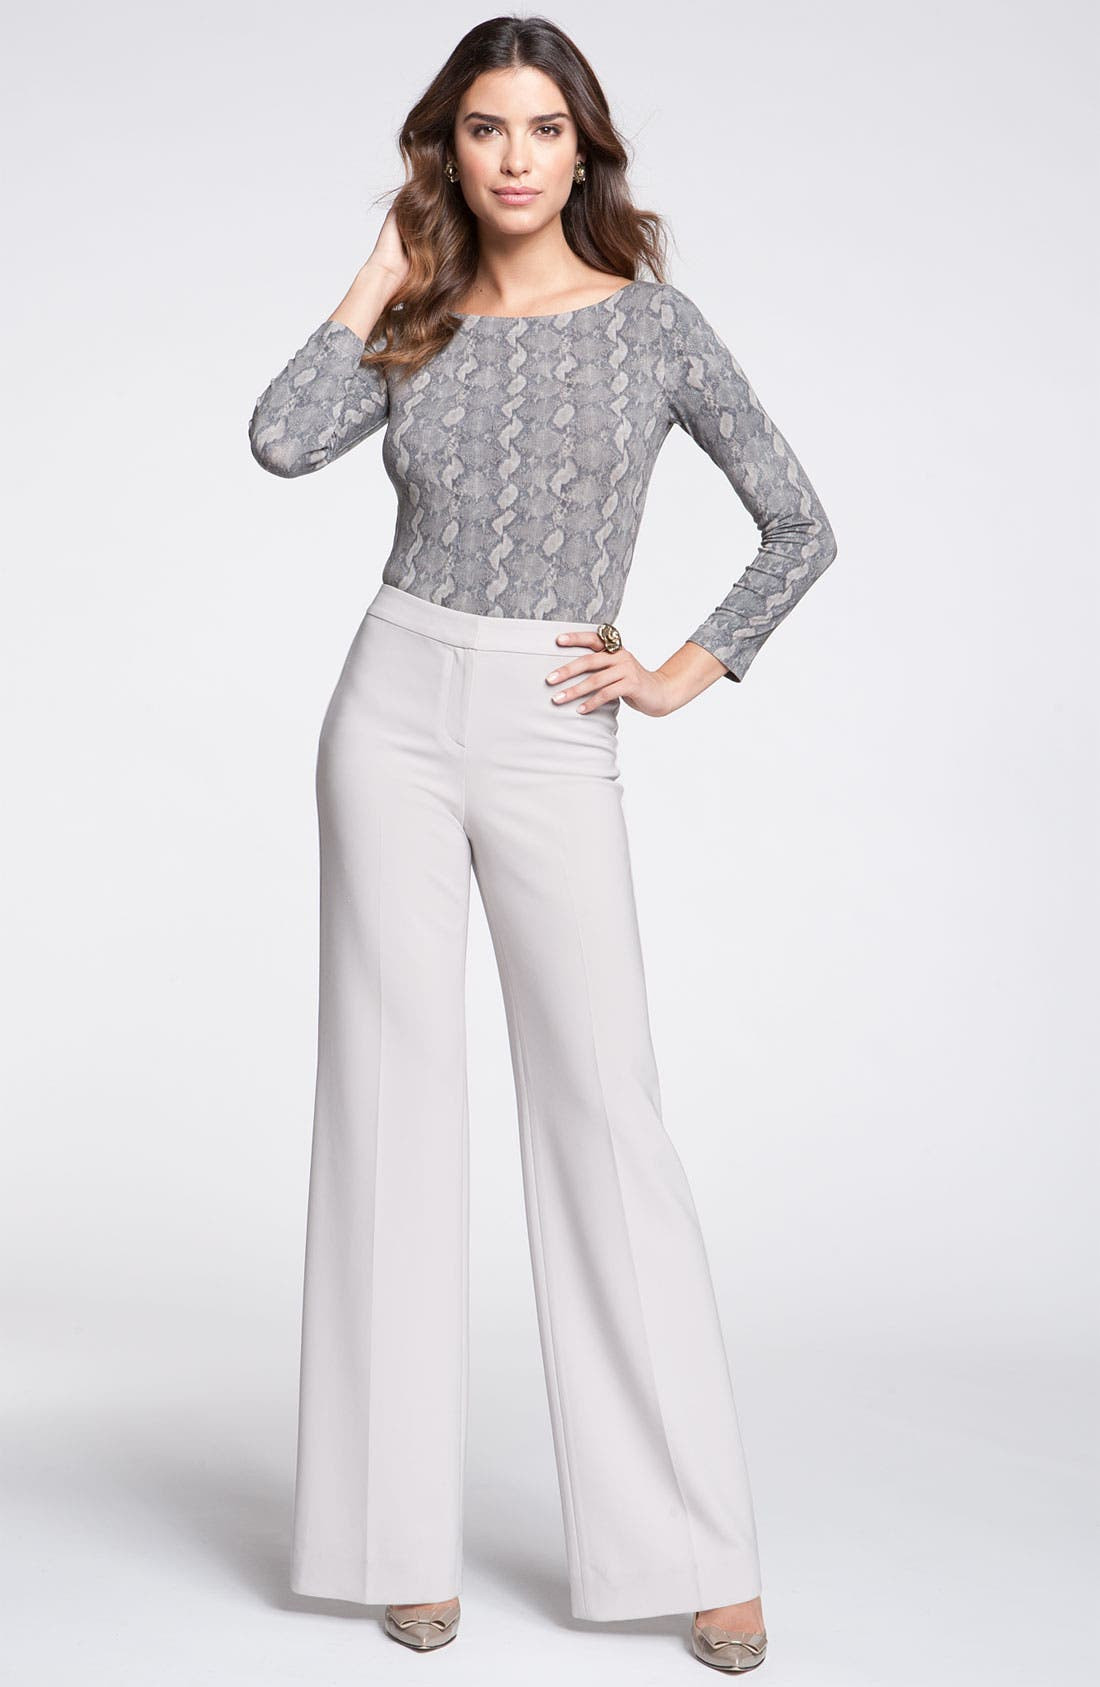 Main Image - St. John Collection Crepe Marocain Wide Leg Pants